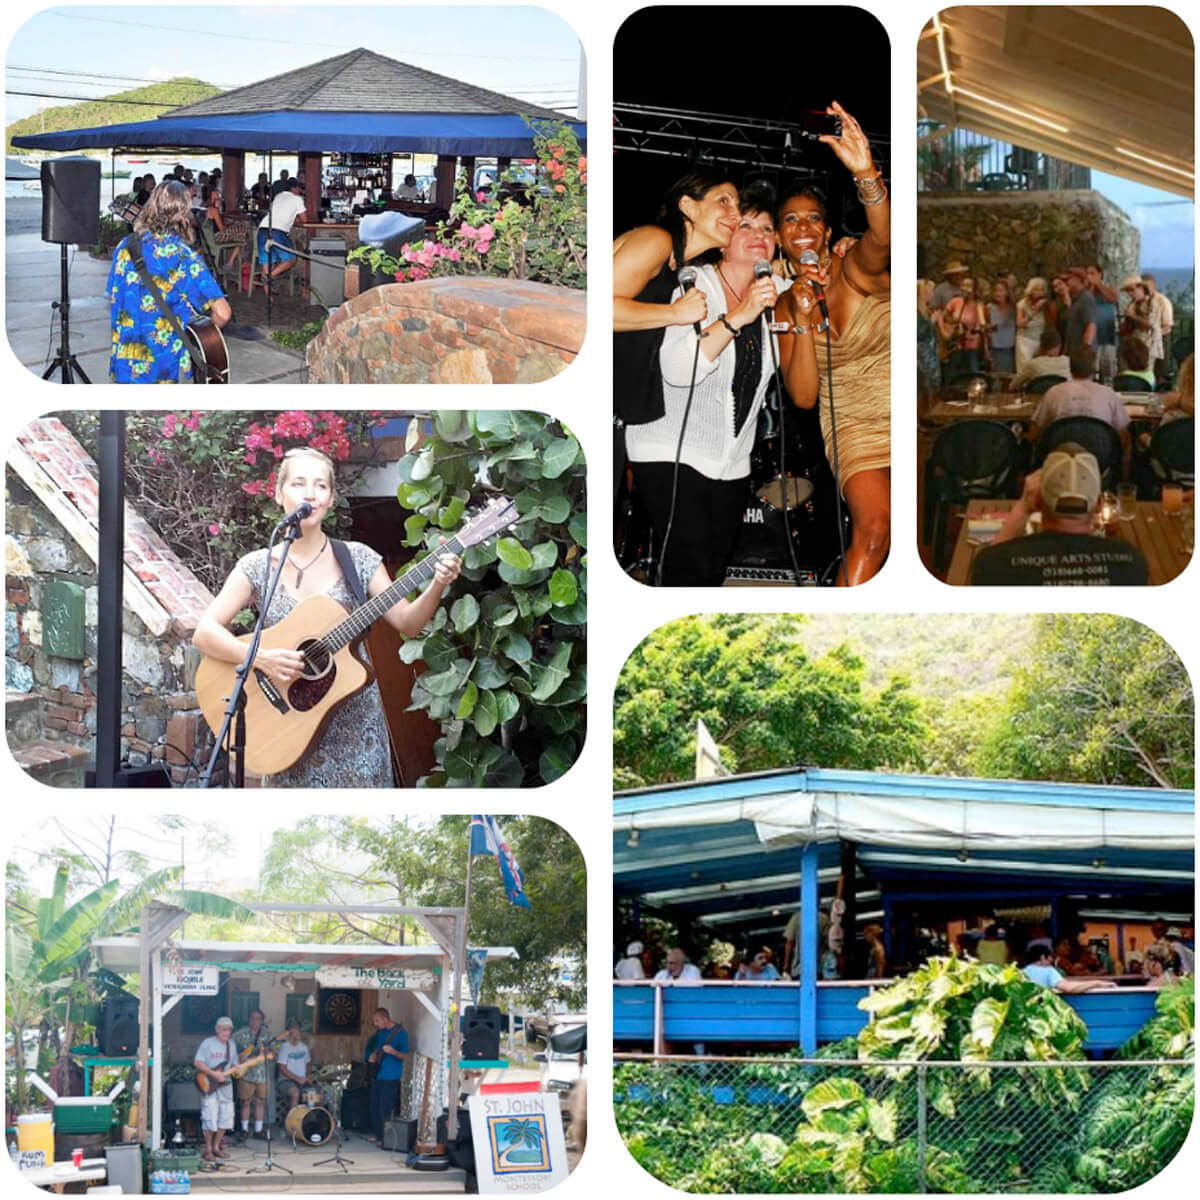 Music and Fun in Coral Bay, St John